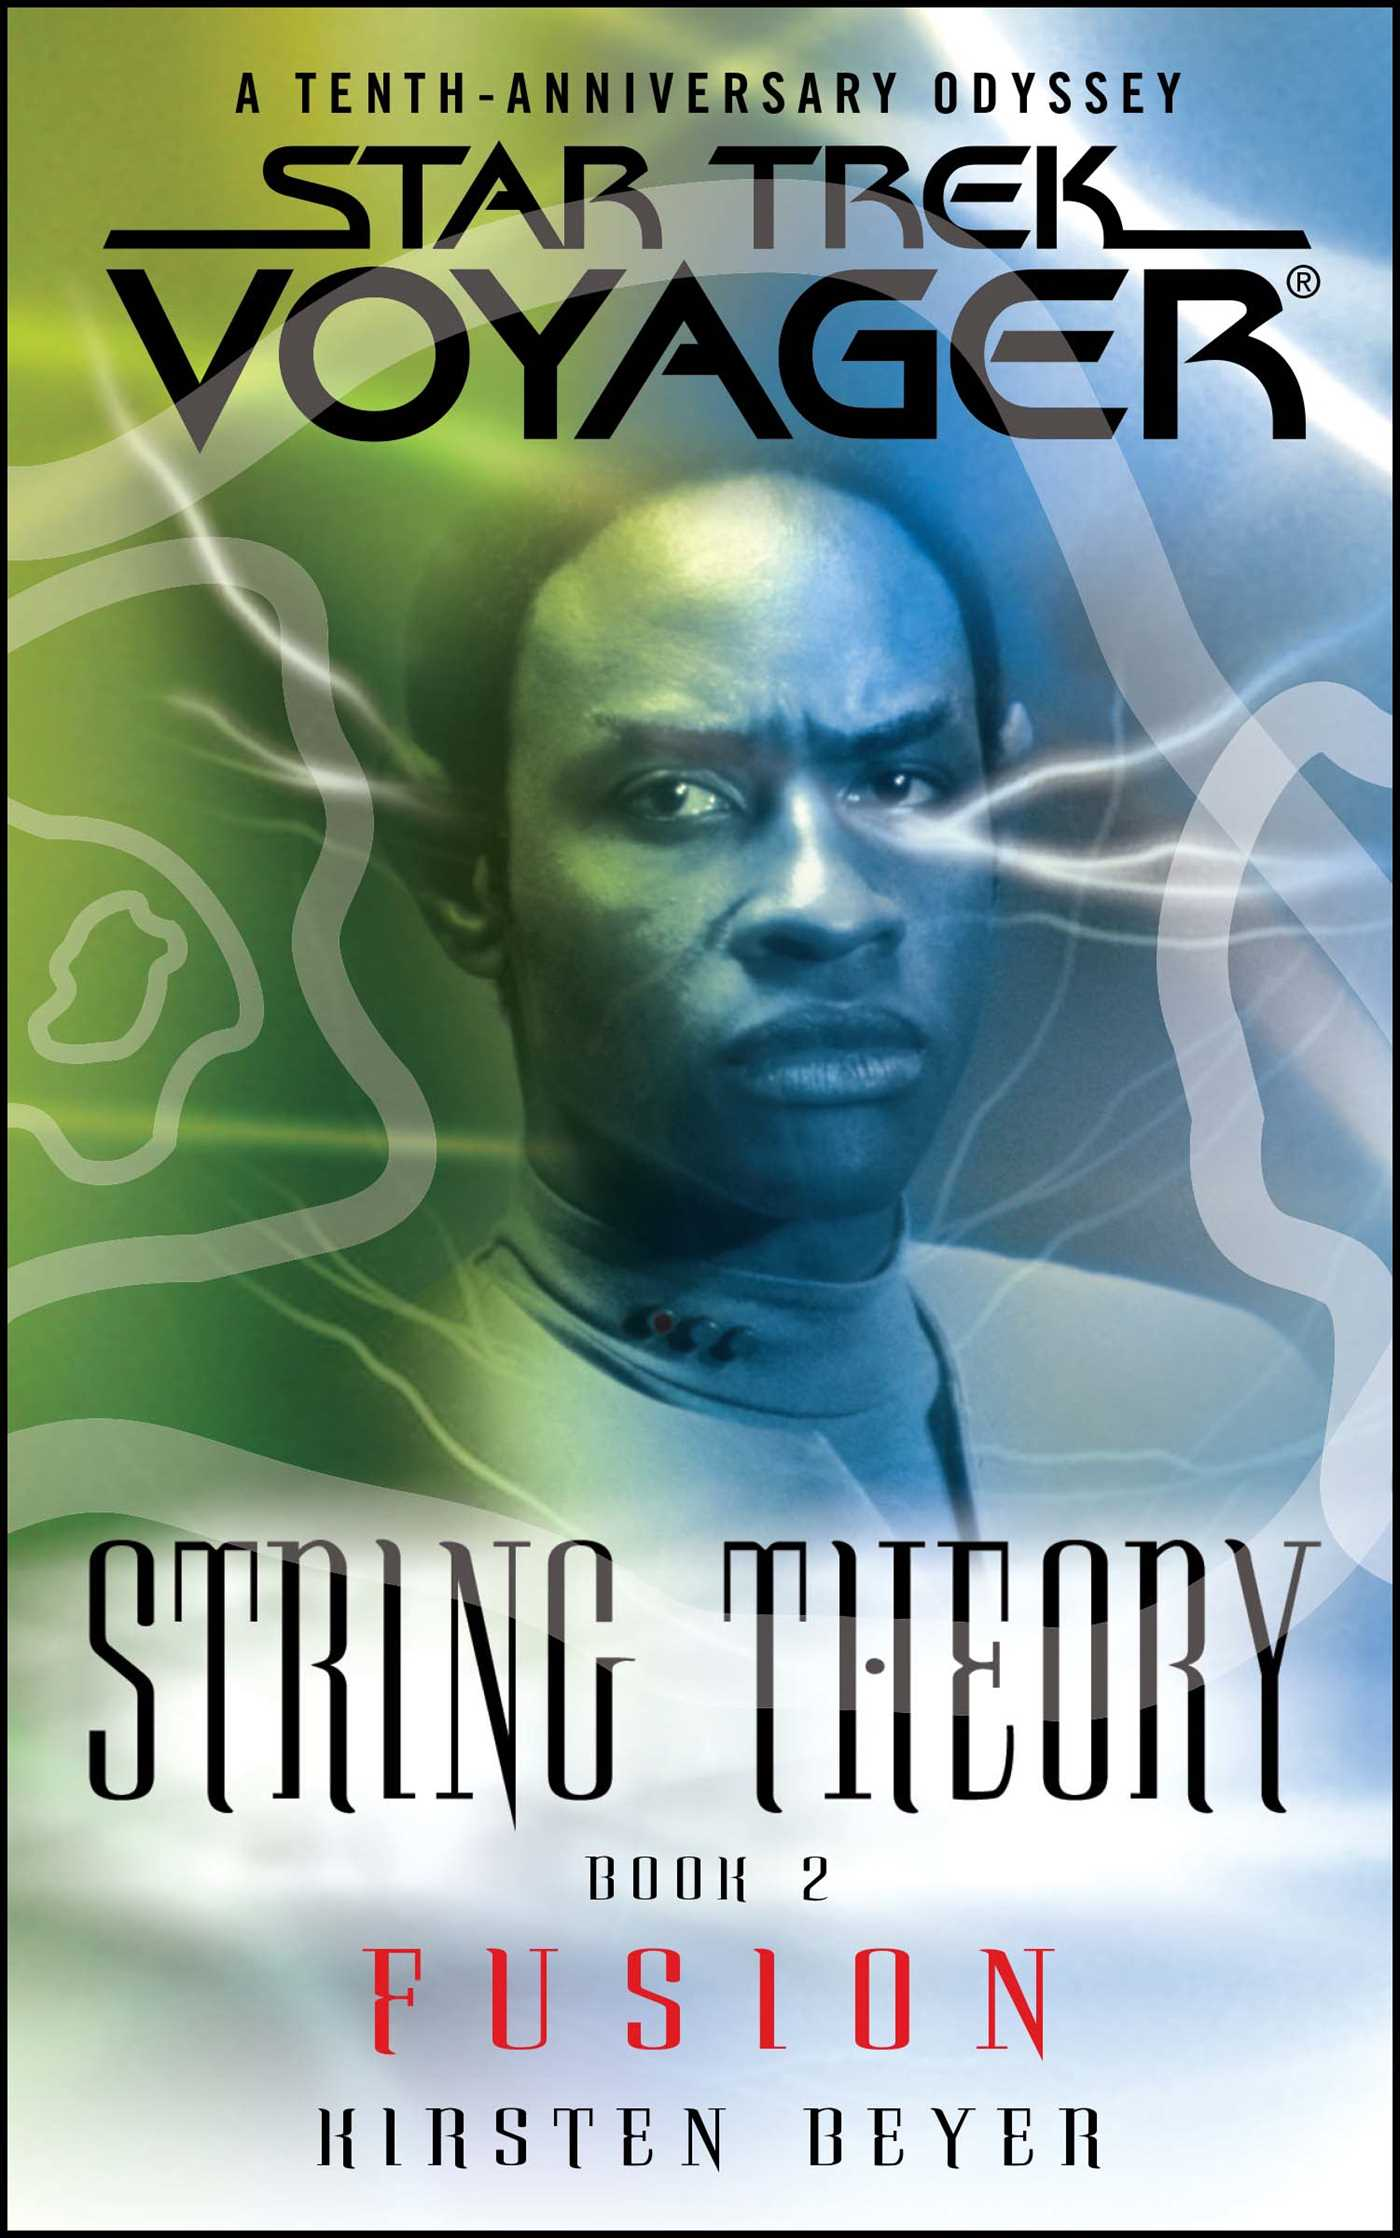 Star trek voyager string theory 2 fusion 9781416516279 hr